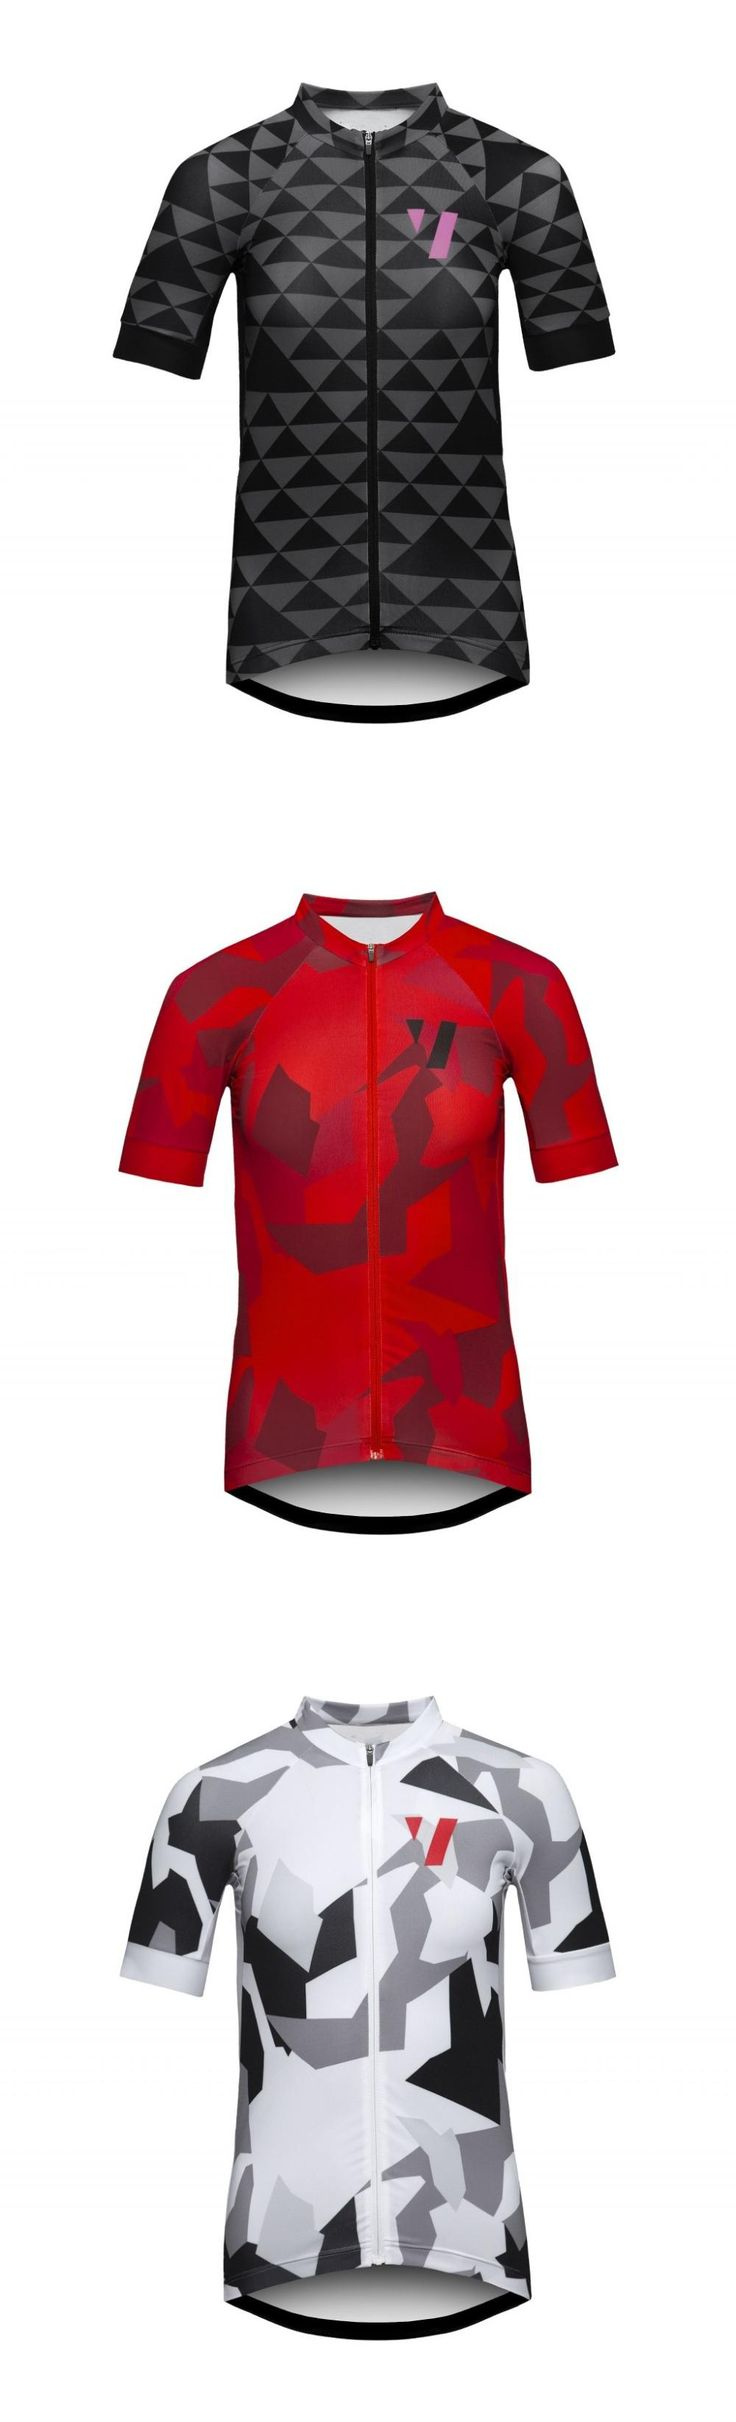 [Visit to Buy] 2017 Newest VOID Summer Short Sleeve Women Cycling Jersey Tops Ropa De Ciclismo Hombre Road Bike MTB Women Cycling Clothing  #Advertisement